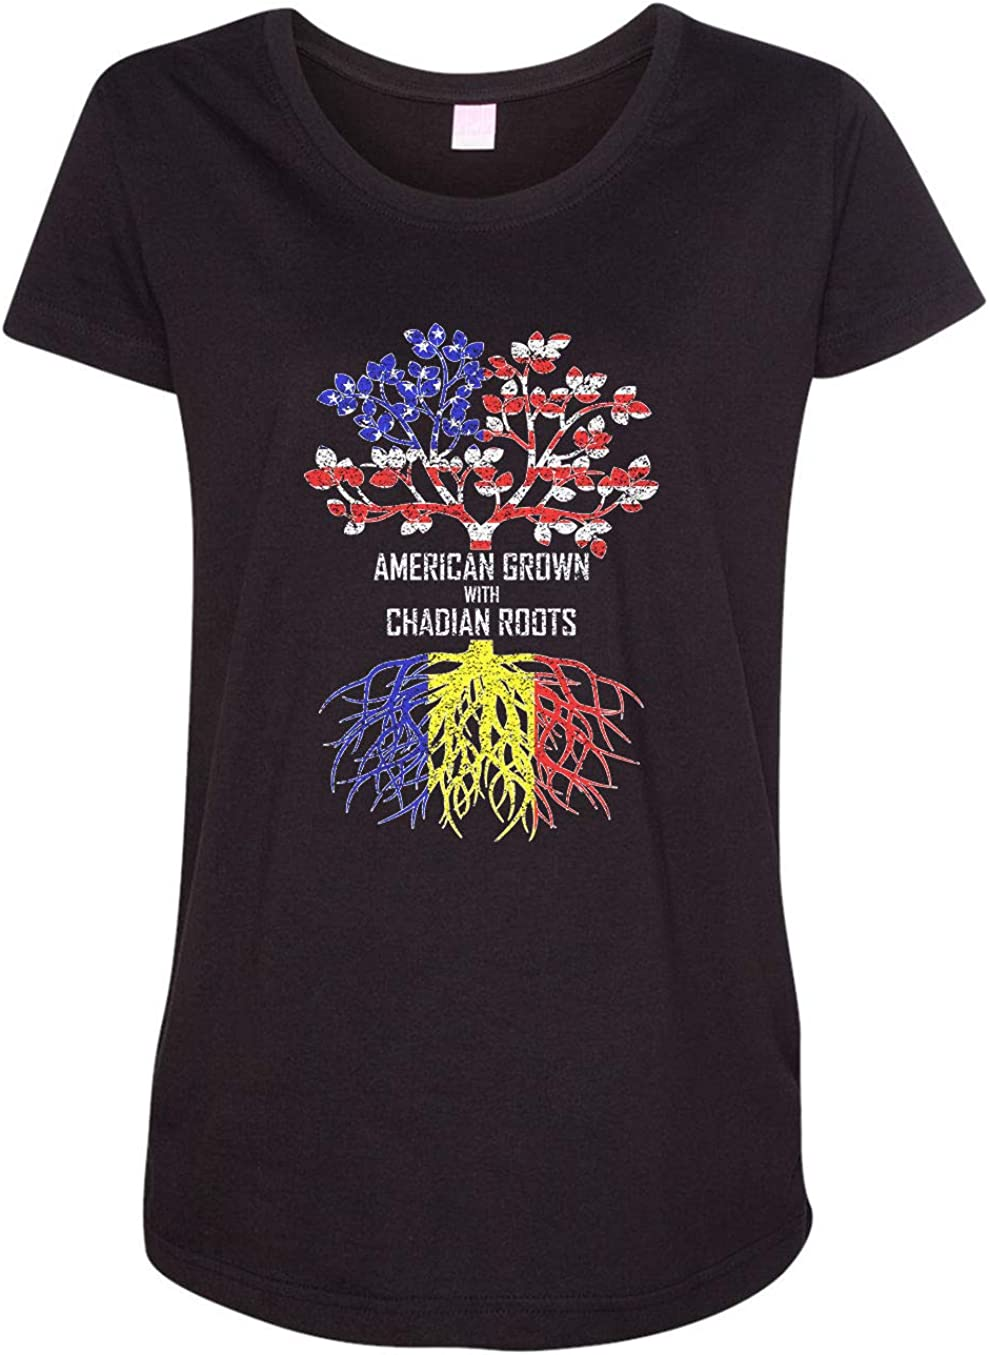 HARD EDGE DESIGN Women's American Grown with Chadian Roots T-Shirt